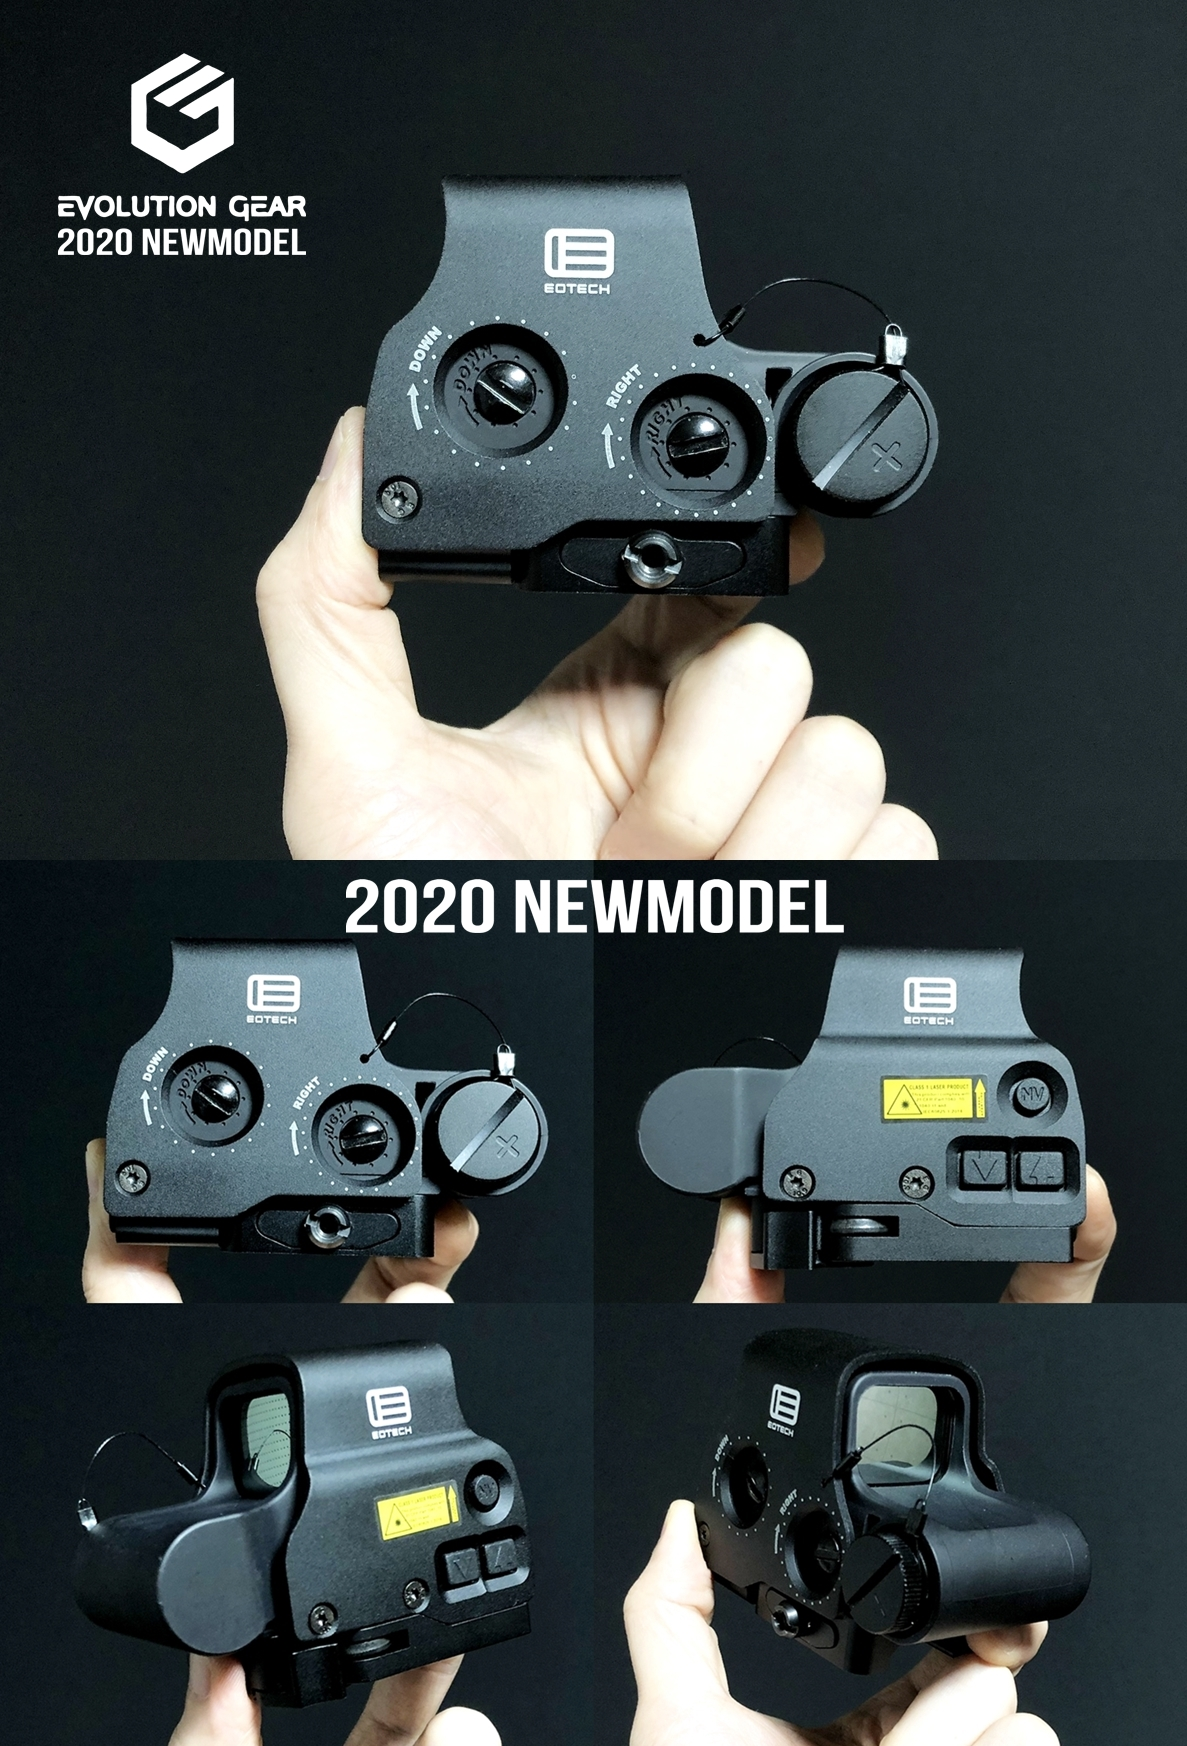 1 EVOLUTION GEAR 2020 改良版 EOTech EXPS3-0 NEW!! 最新リアルバージョンの改良点を徹底検証だ!! 新エボギア & 旧エボギア & 実物 イオテック ホロサイト!! 開封 比較 検証 取付 レビュー!!